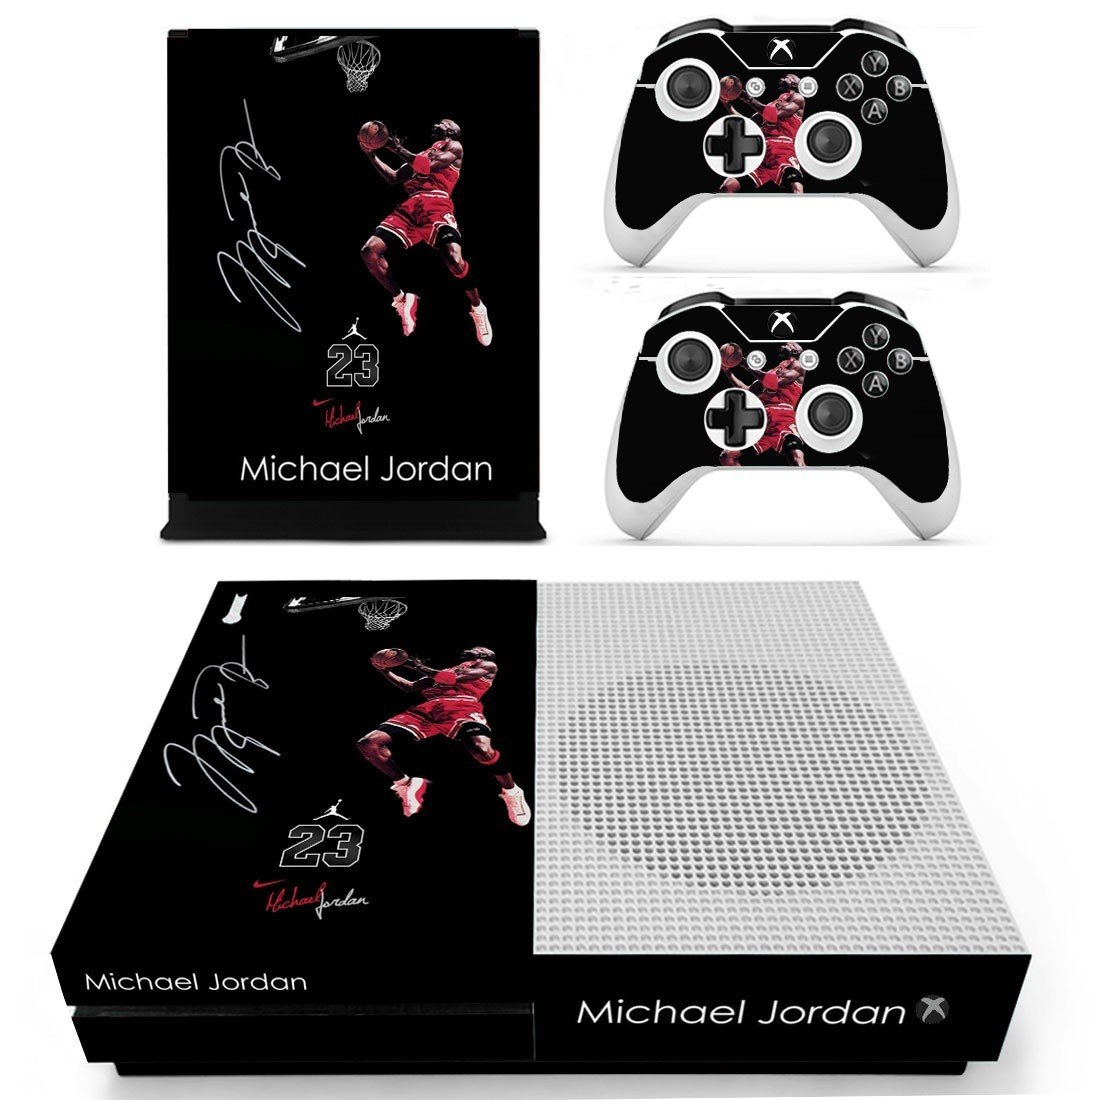 Jordan 23 decal skin sticker for Xbox One S console and controllers